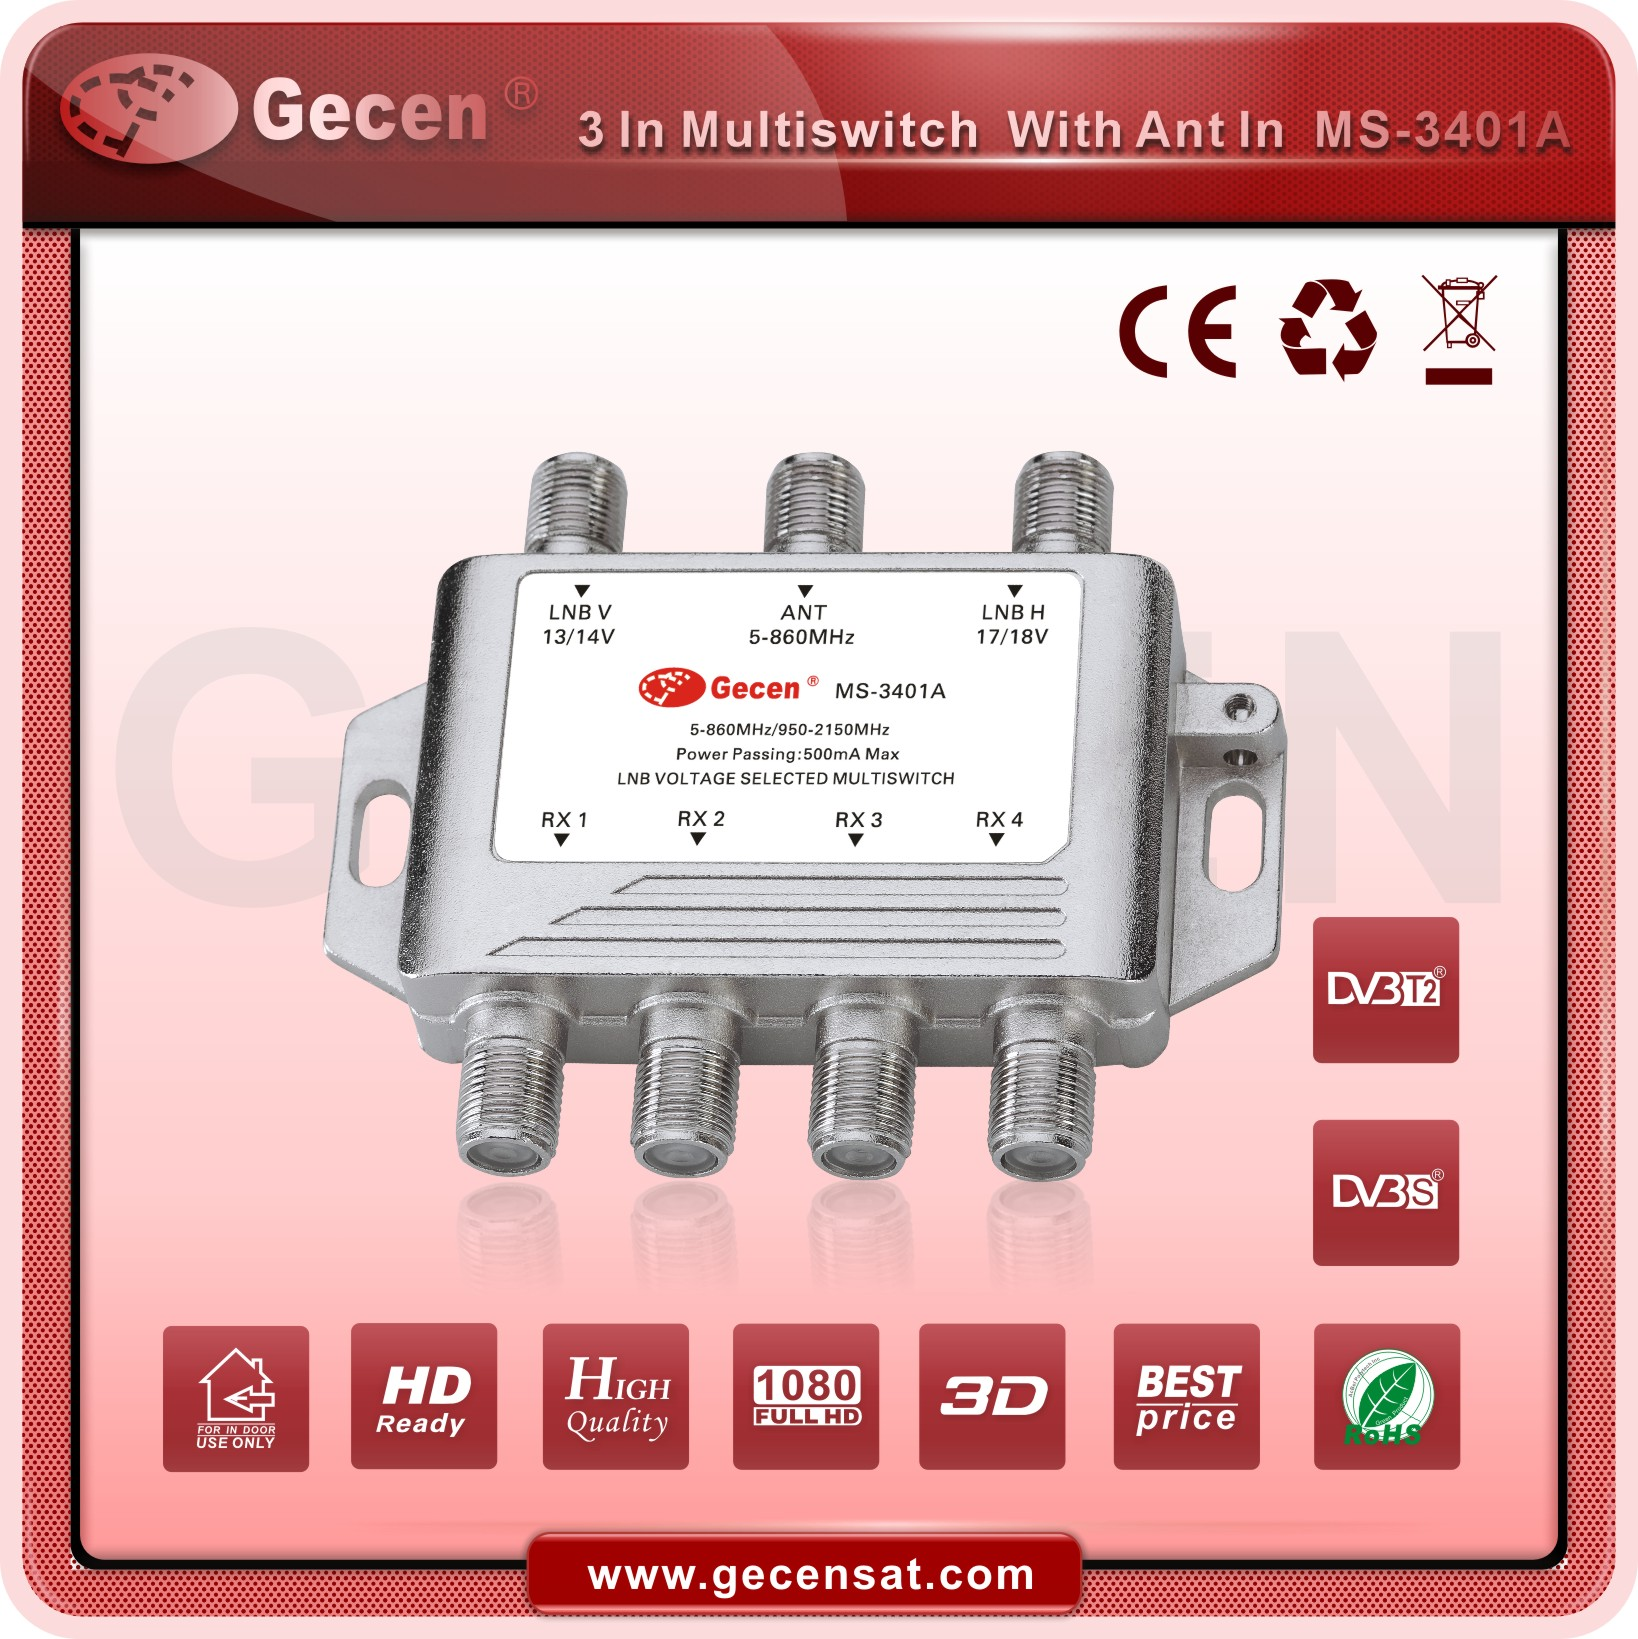 2016 GECEN 3 in 4 Satellite Multiswitch MS-3401A